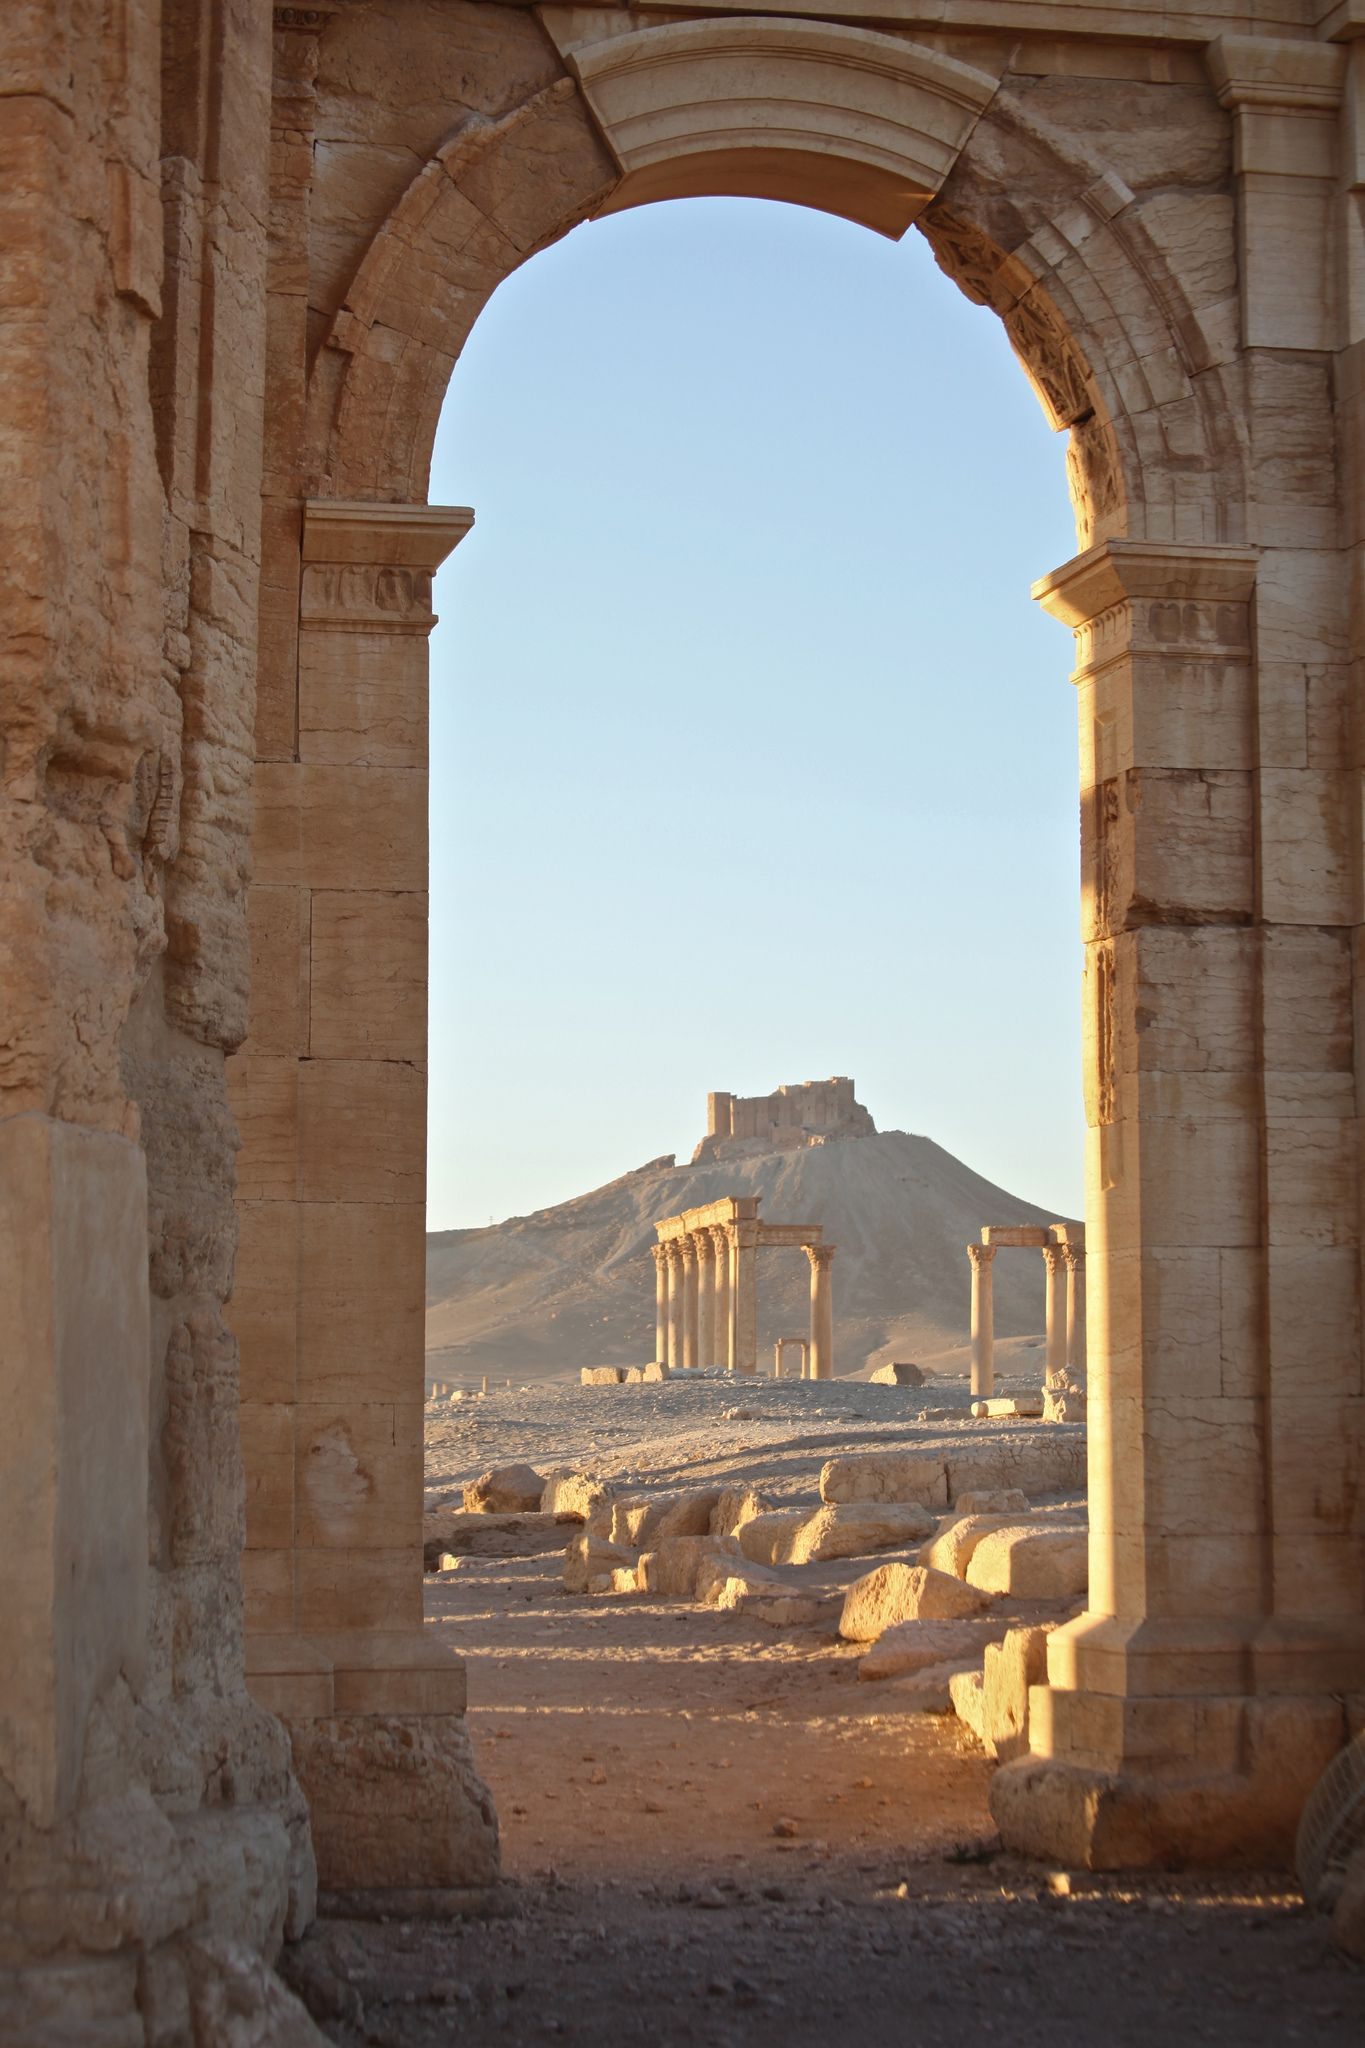 , Arched Door way Vista Ancient City Landscapes of Palmyra The UNESCO World Heritage Site Syria Middle East, My Travels Blog 2020, My Travels Blog 2020